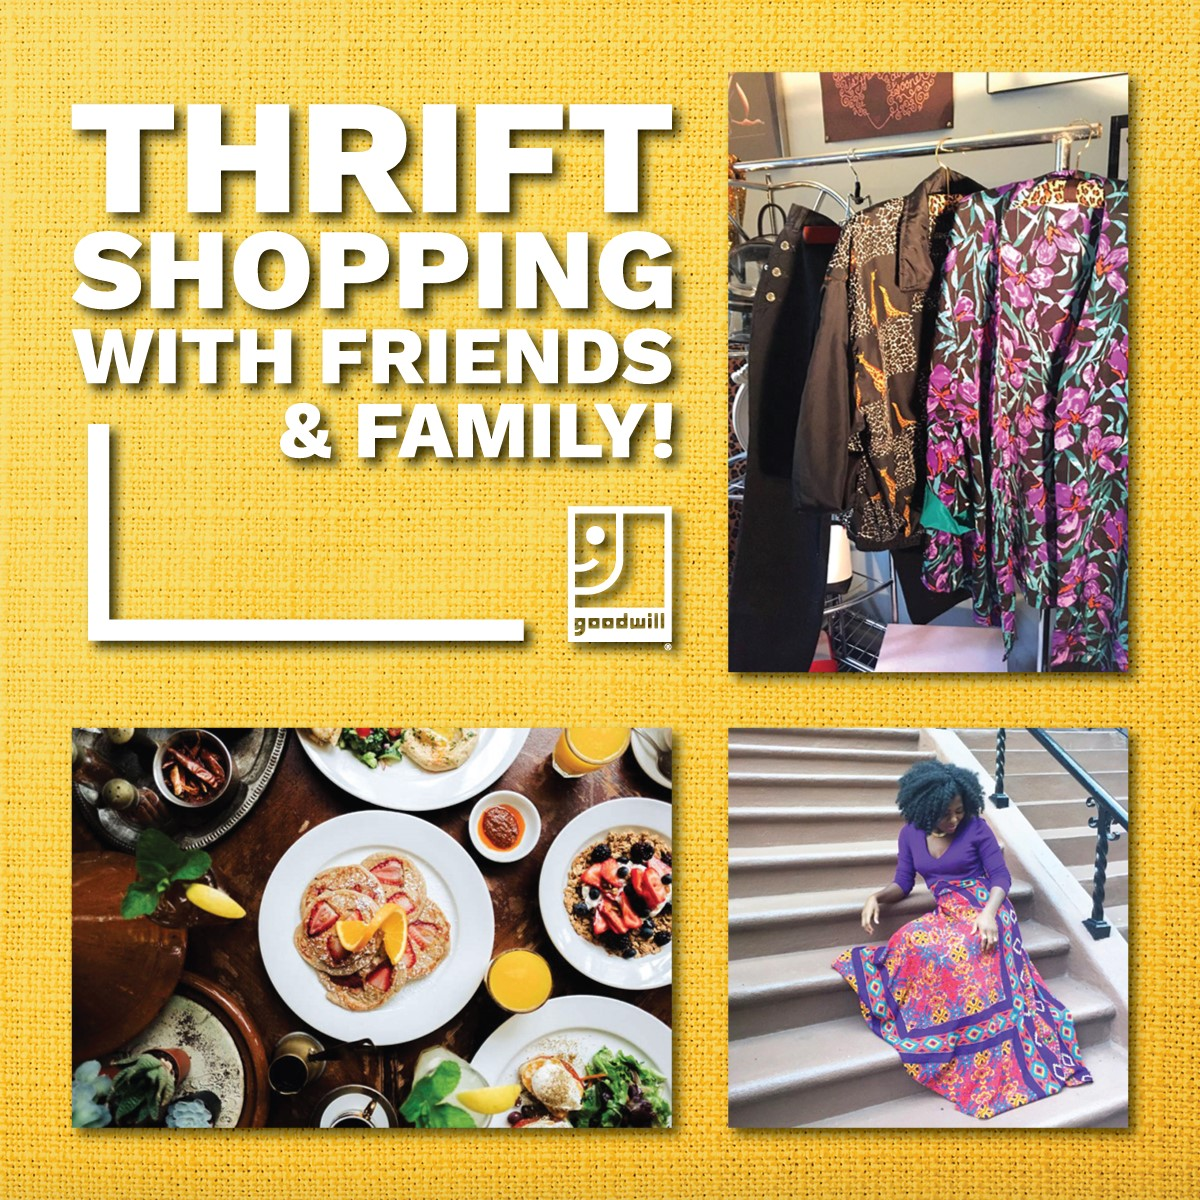 3 Ways to Encourage Friends and Family to Thrift Shop with You